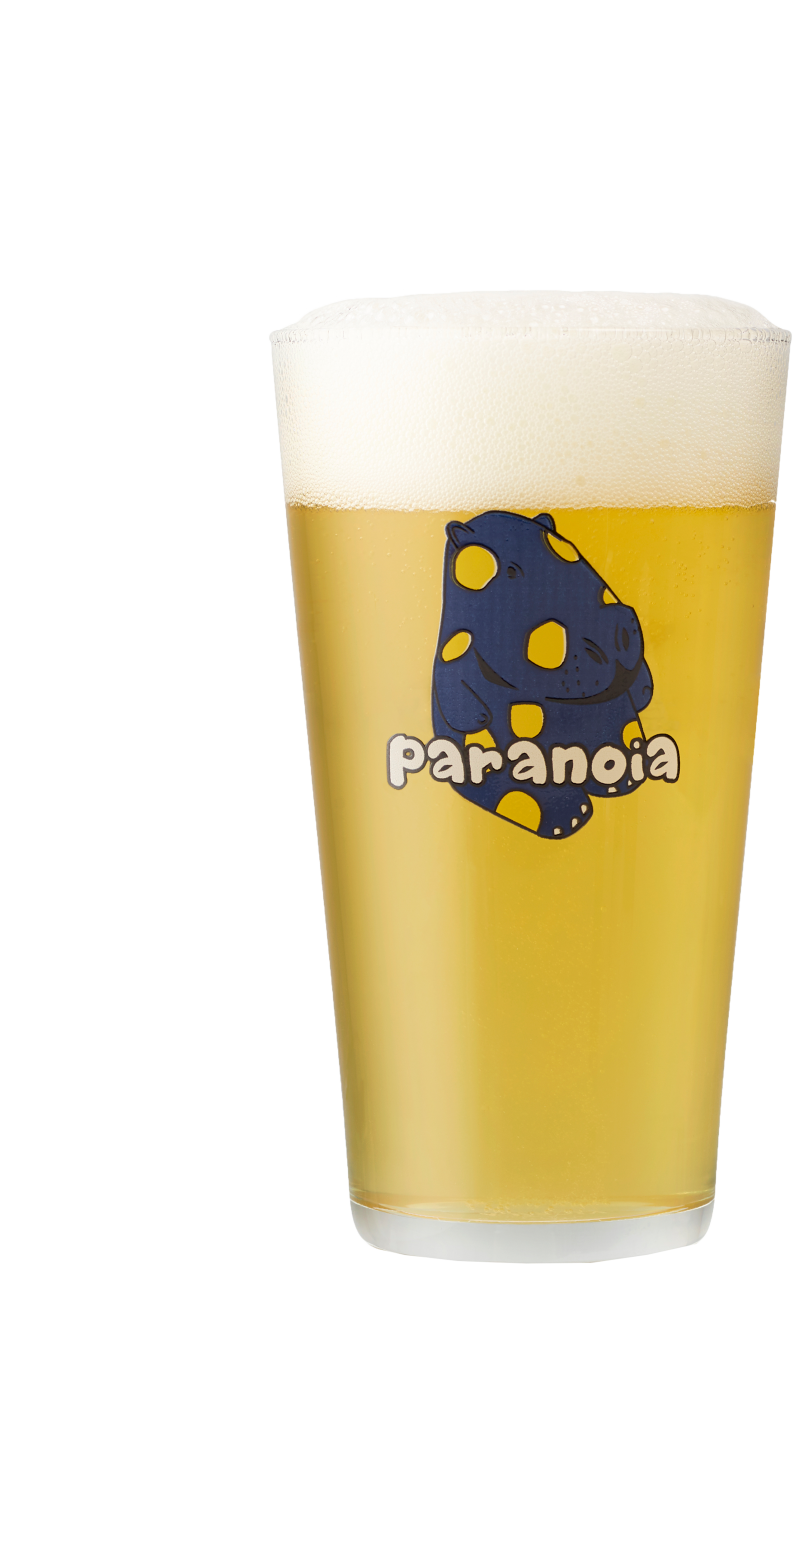 Paranoia Beer